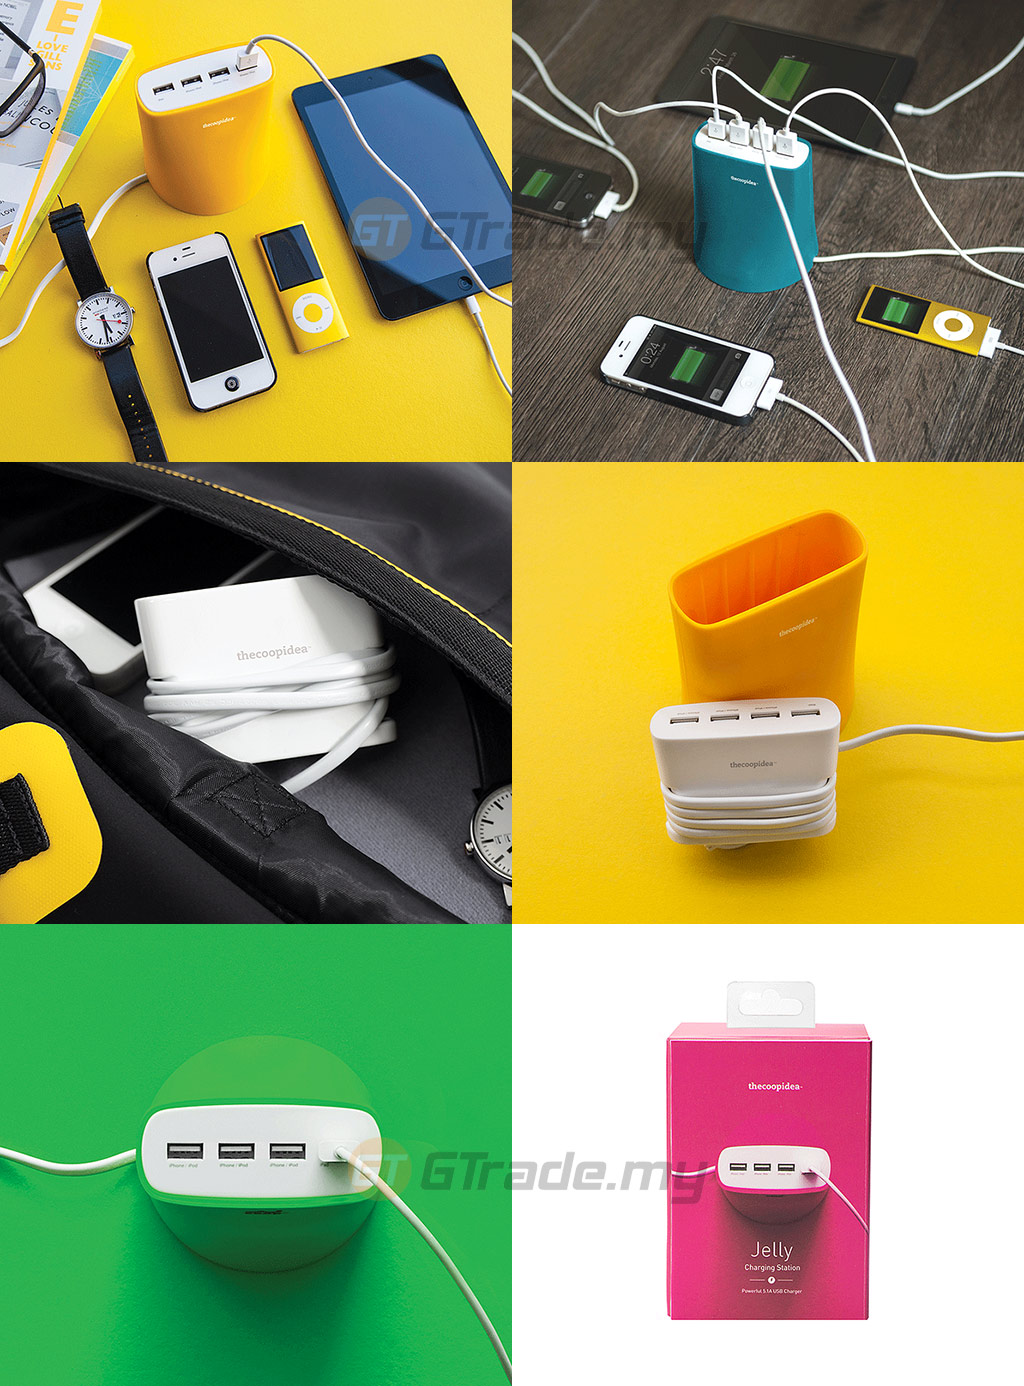 thecoopidea-jelly-5.1a-4-usb-travel-charger-station-p